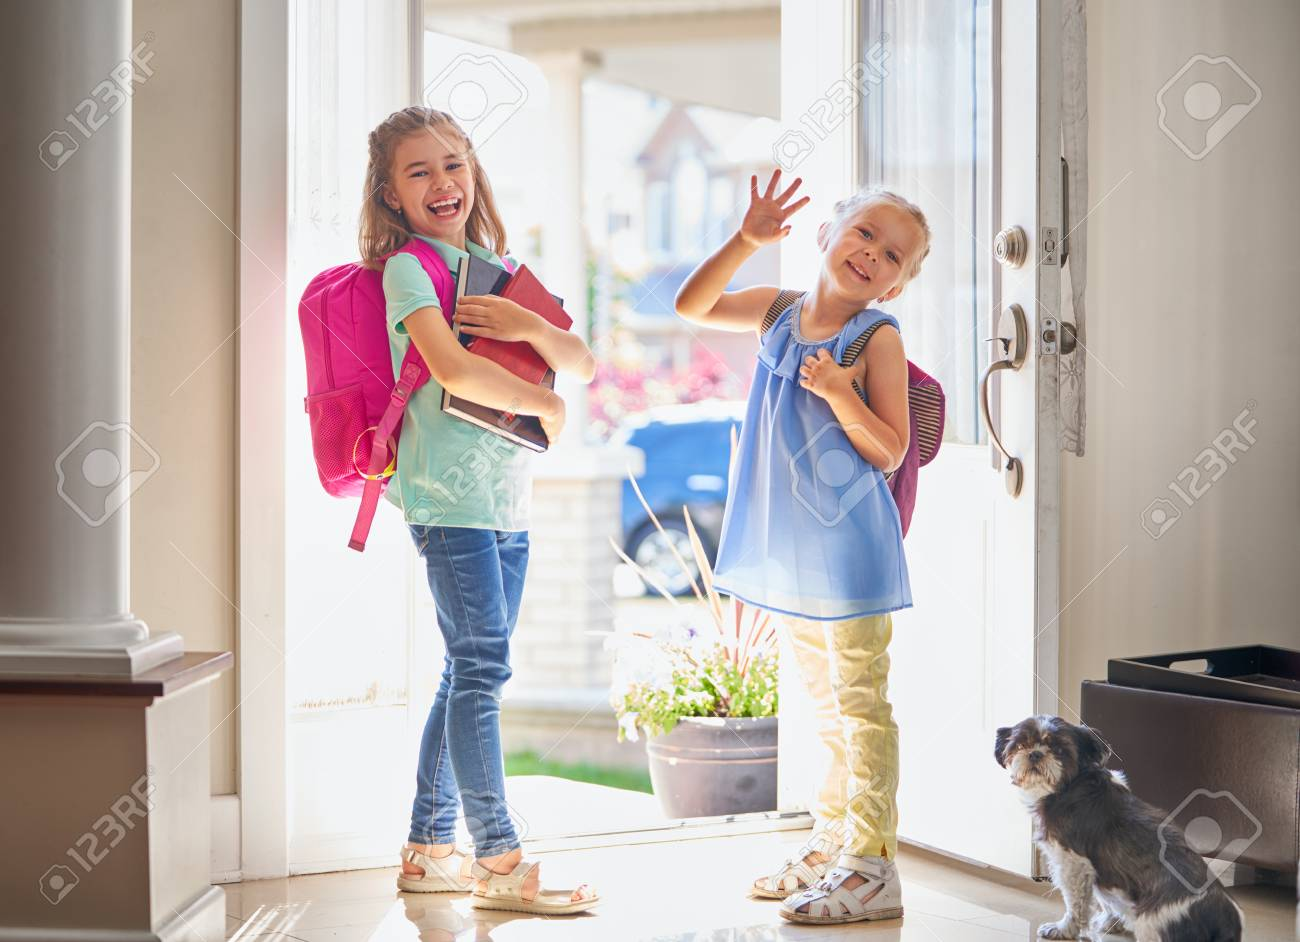 Pupils of primary school. Girls with backpack is going to school from home. Beginning of lessons. First day of fall. - 104771821